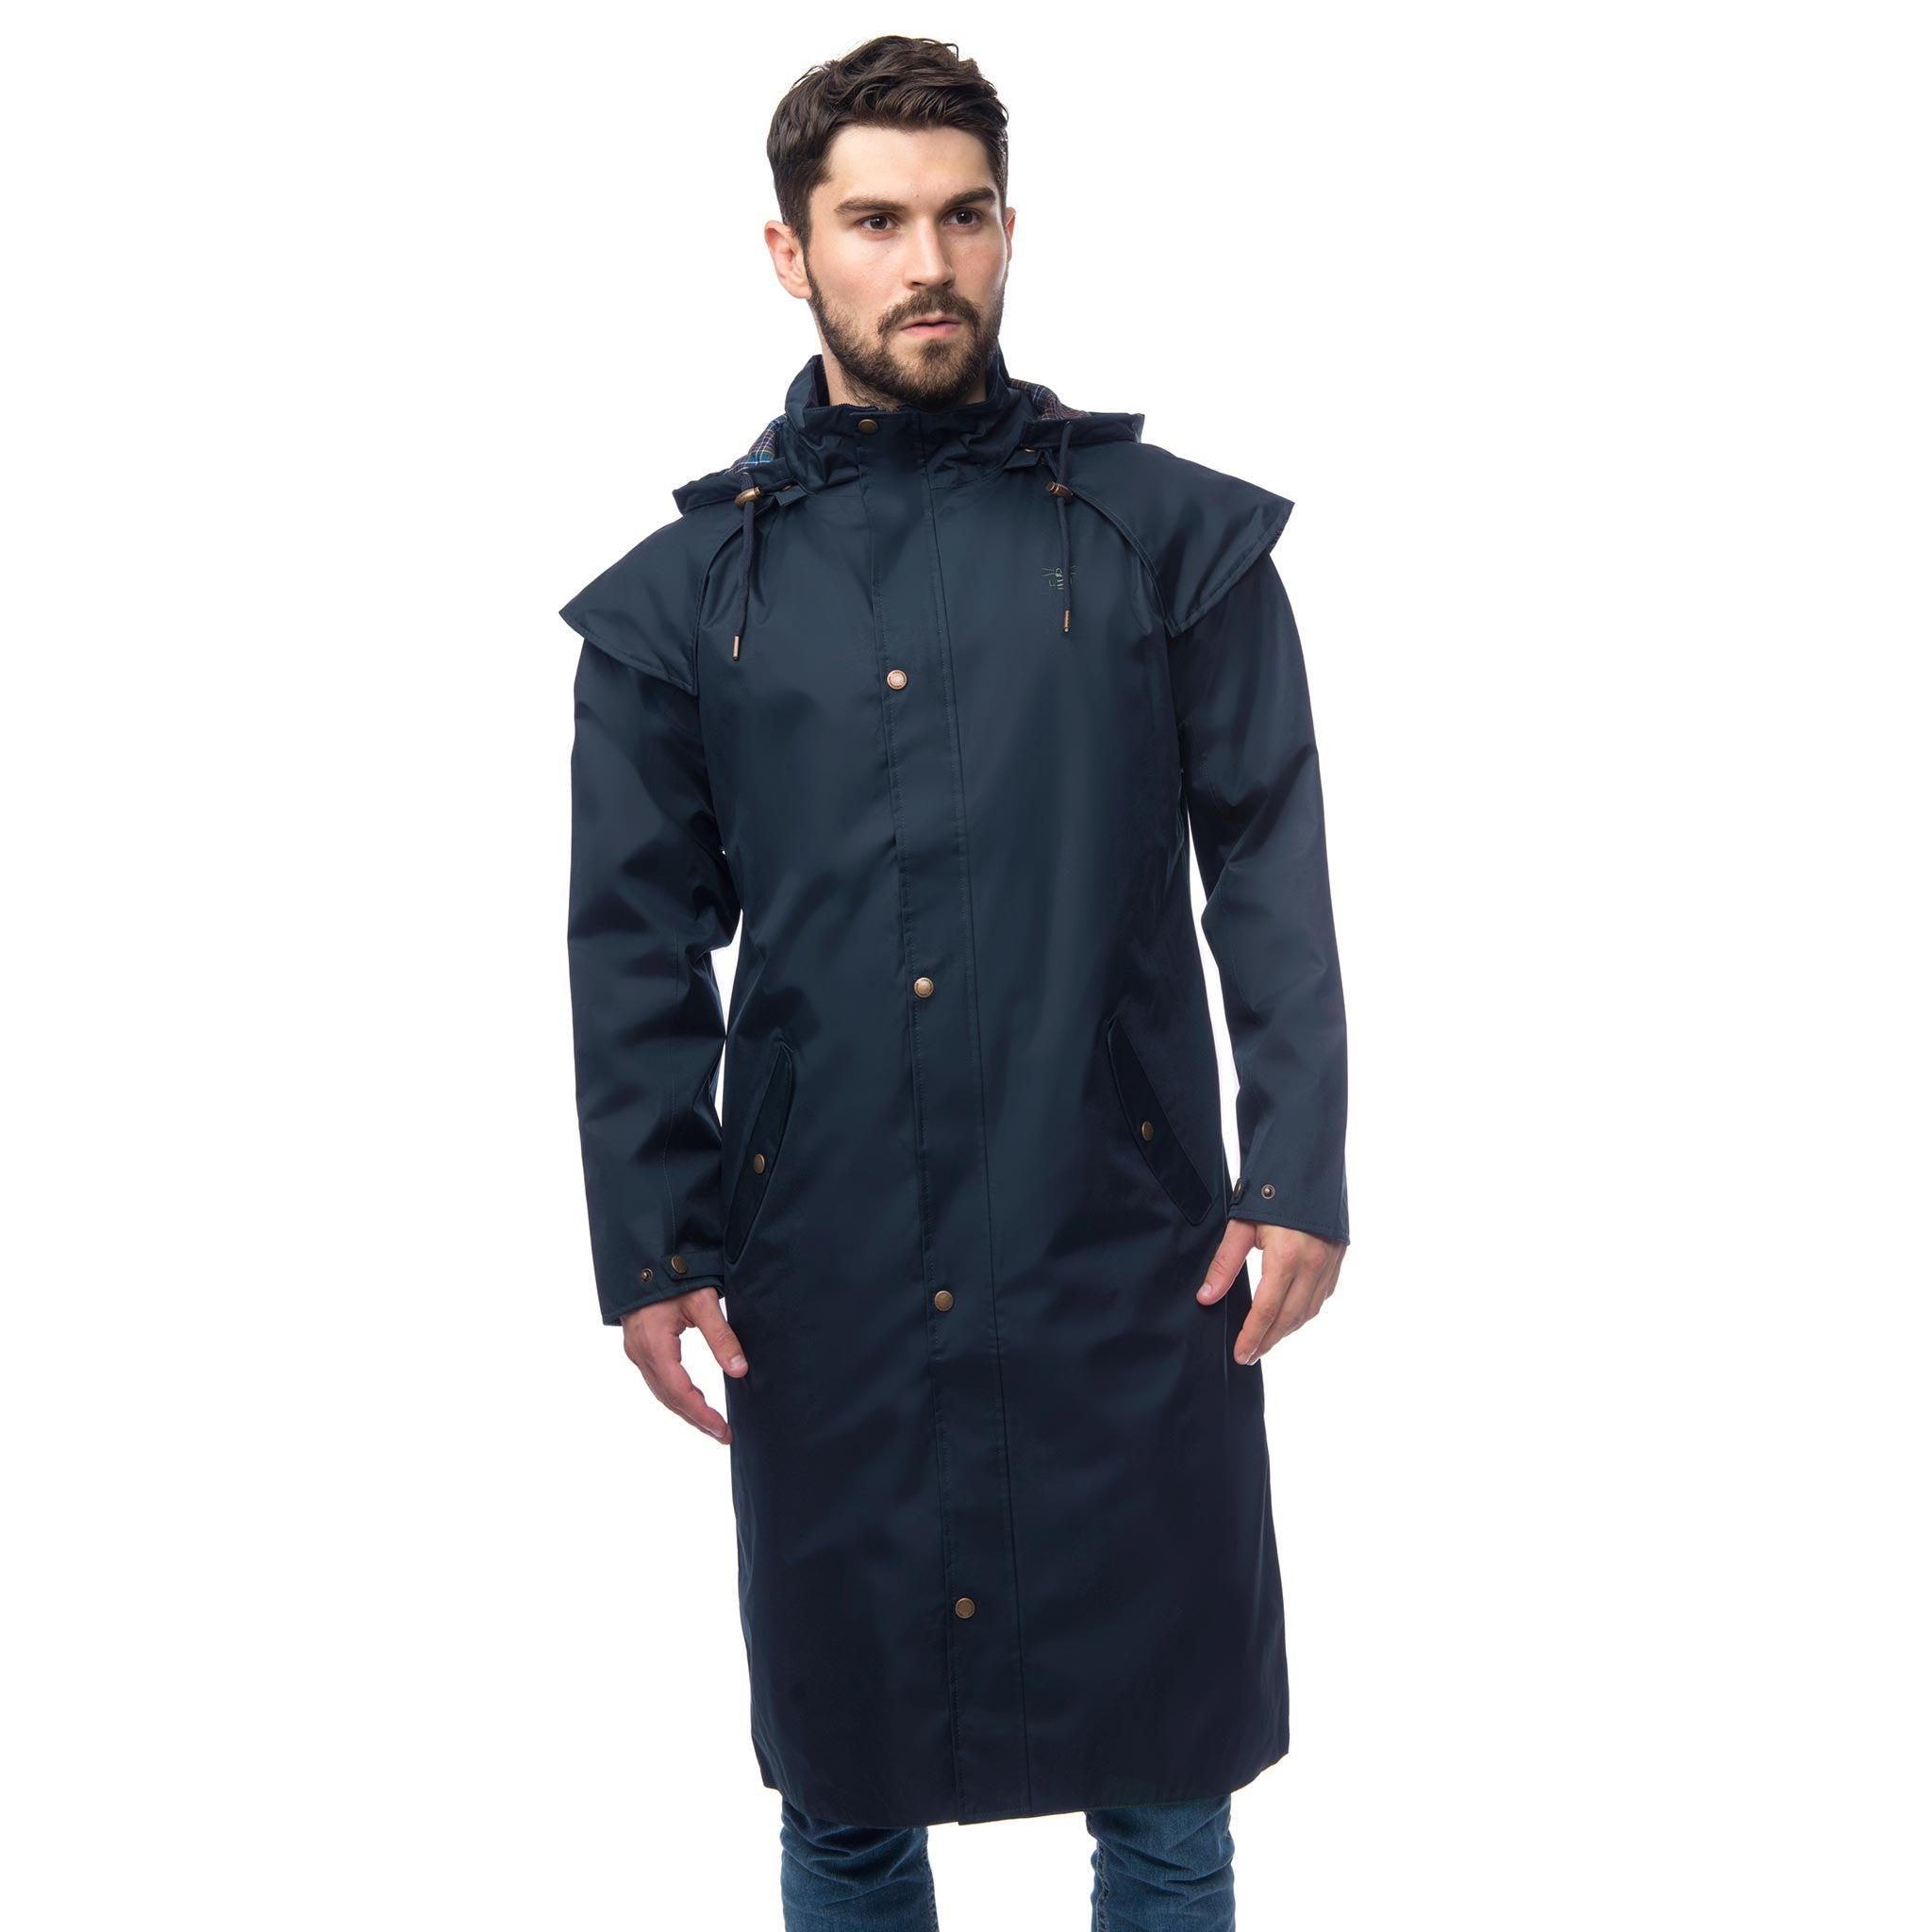 stockman full length waterproof coat mens raincoats lighthouse #1: lighthouse stockman full length waterproof overcoat navy front v